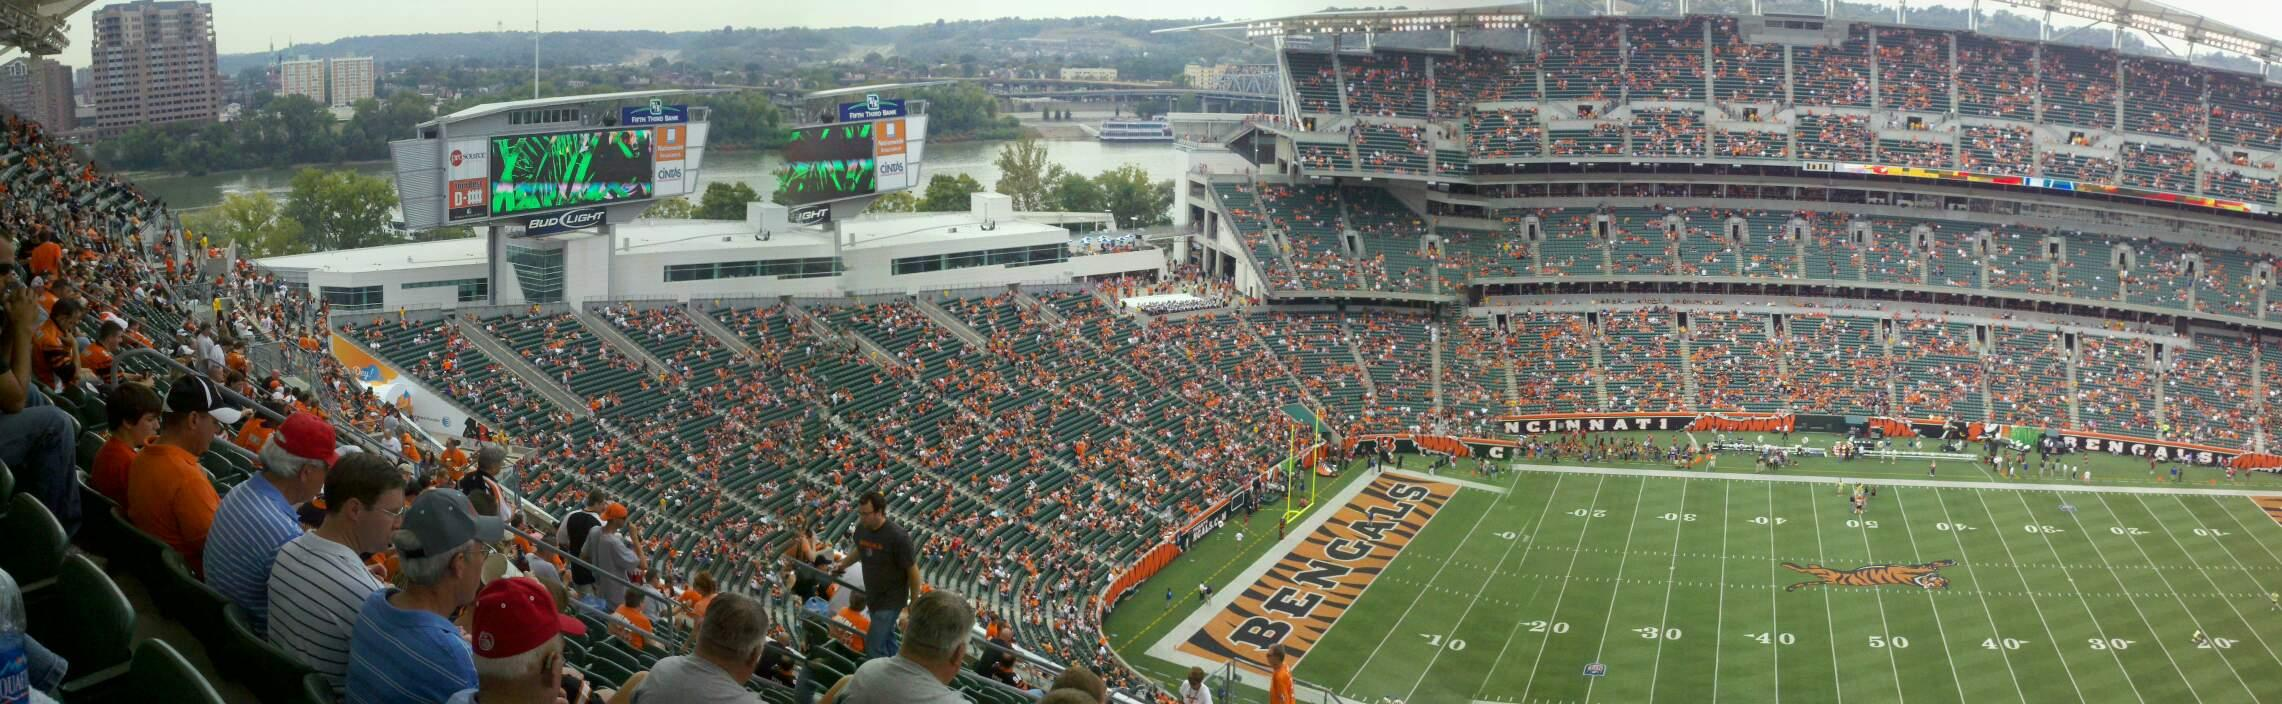 Paul Brown Stadium Section 341 Row 27 Seat 12